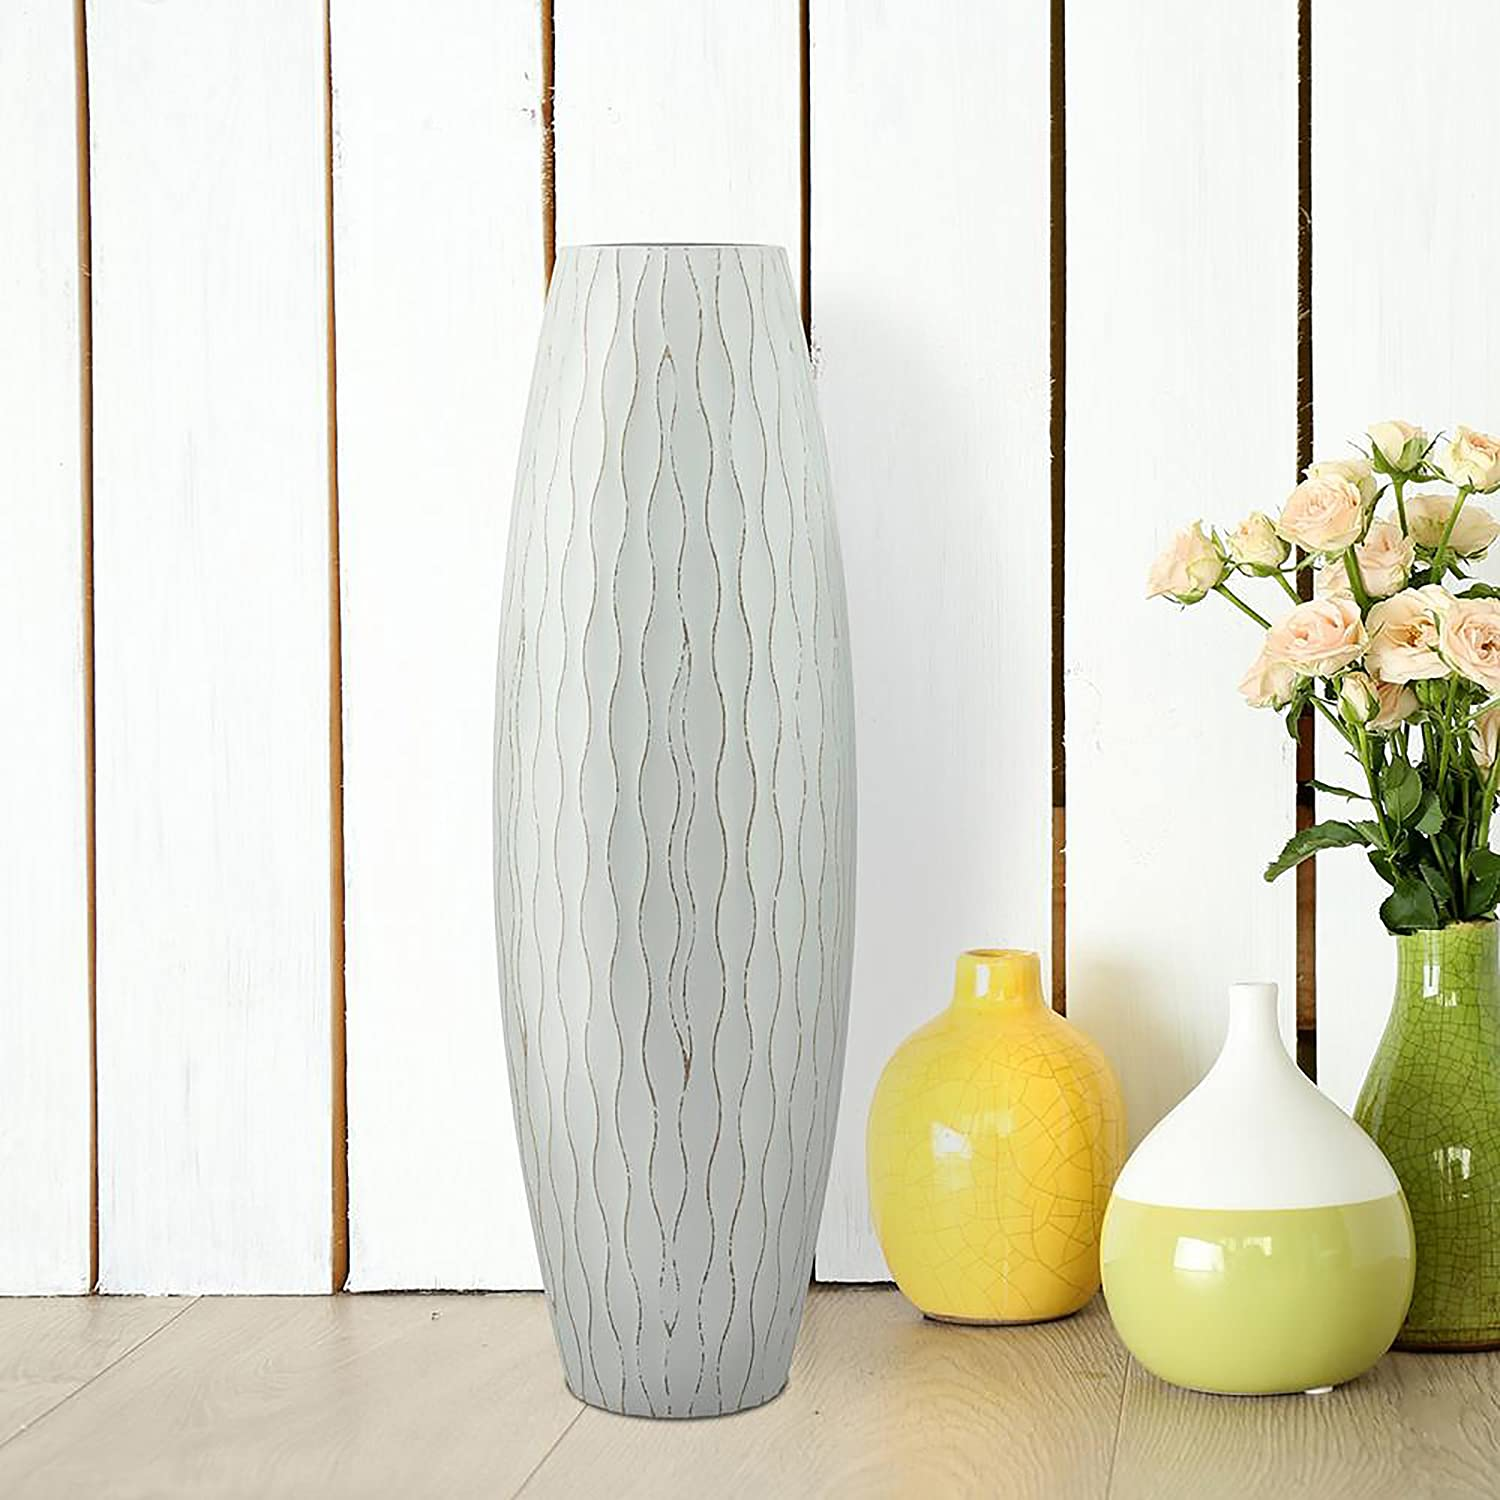 Large weathered pale ocean wood vase